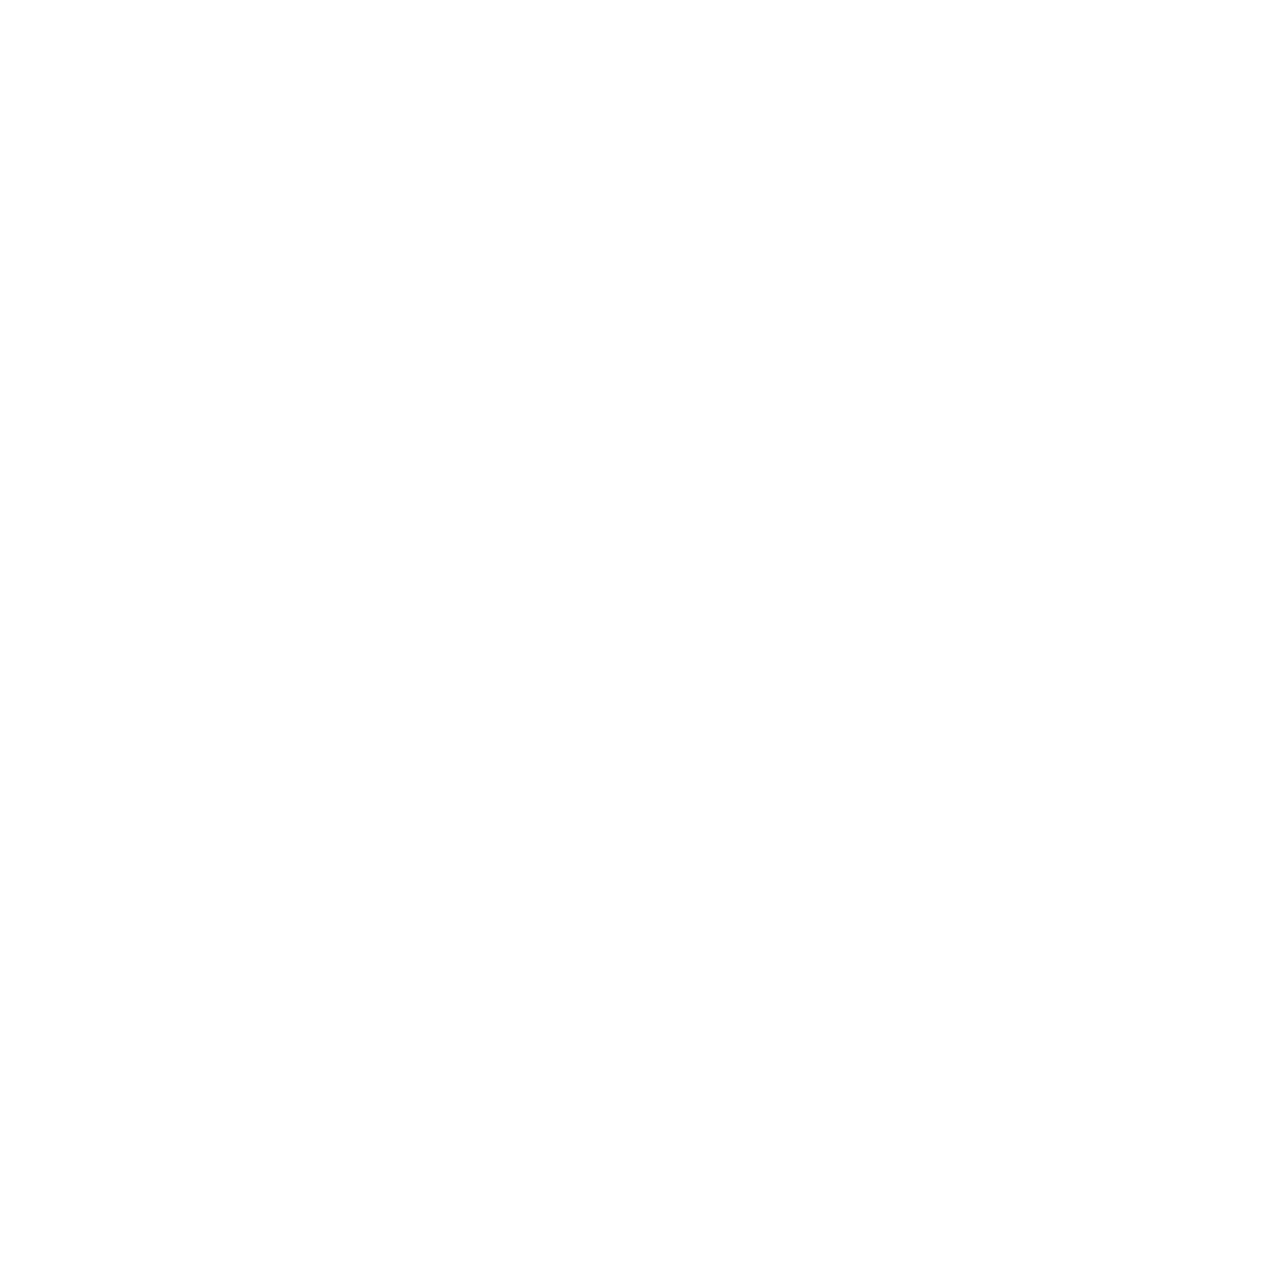 Marumatsu Tea Corporation Established 1899